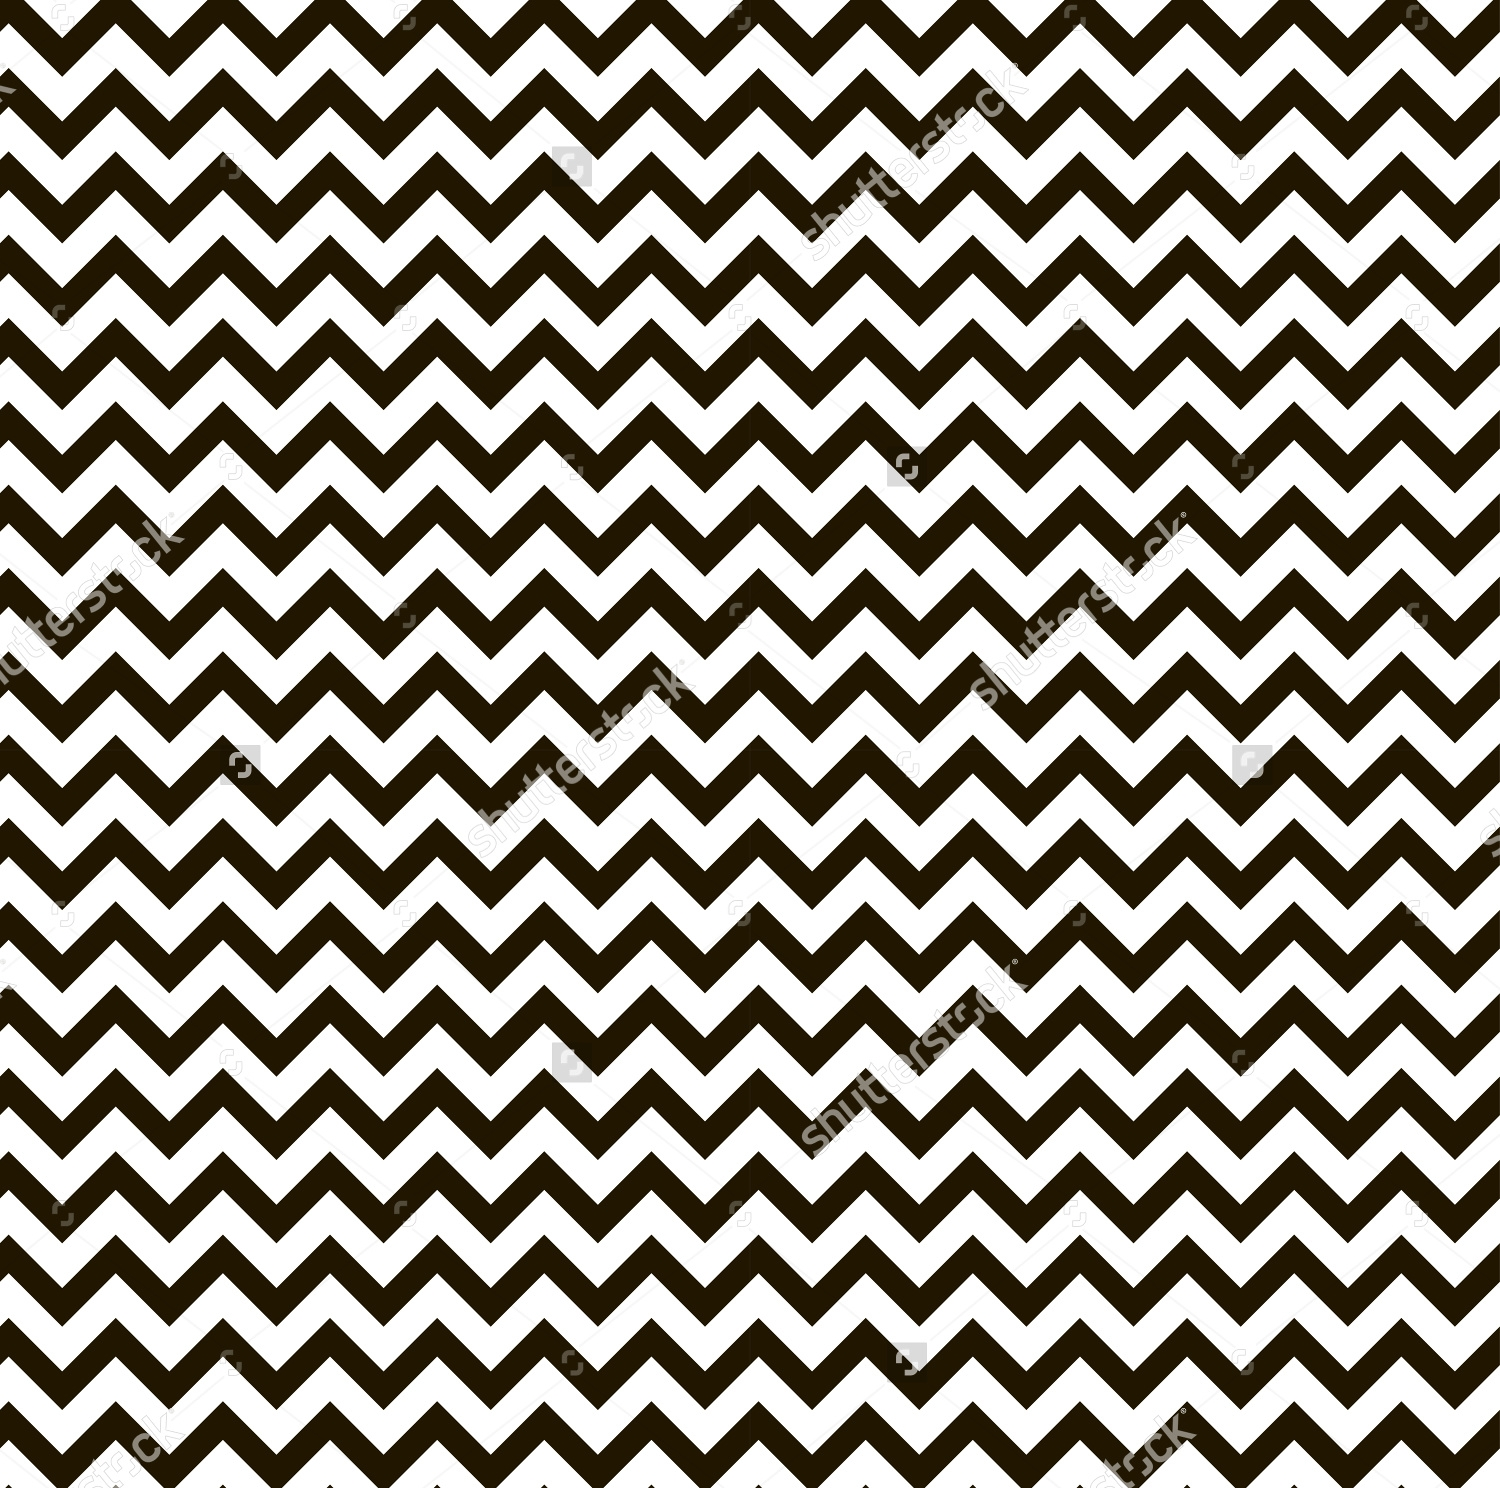 zig zag black and white background